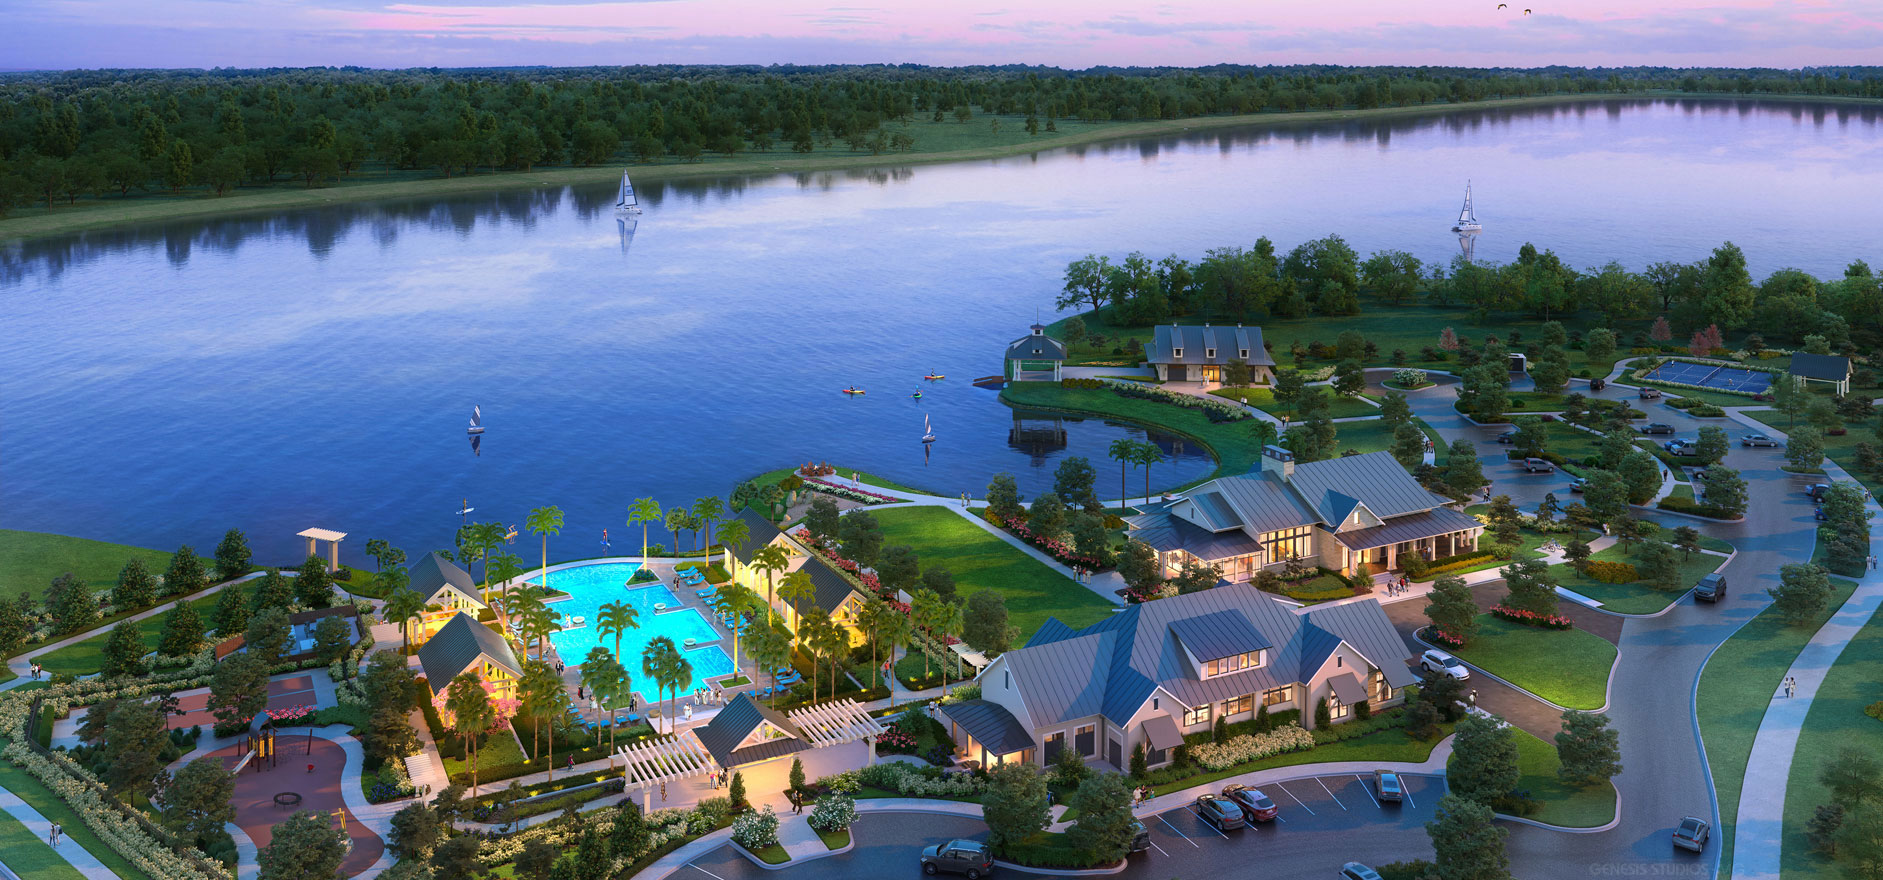 3D Hospitality Renderings of Lake House Cove from an Aerial View for Pace Advertising